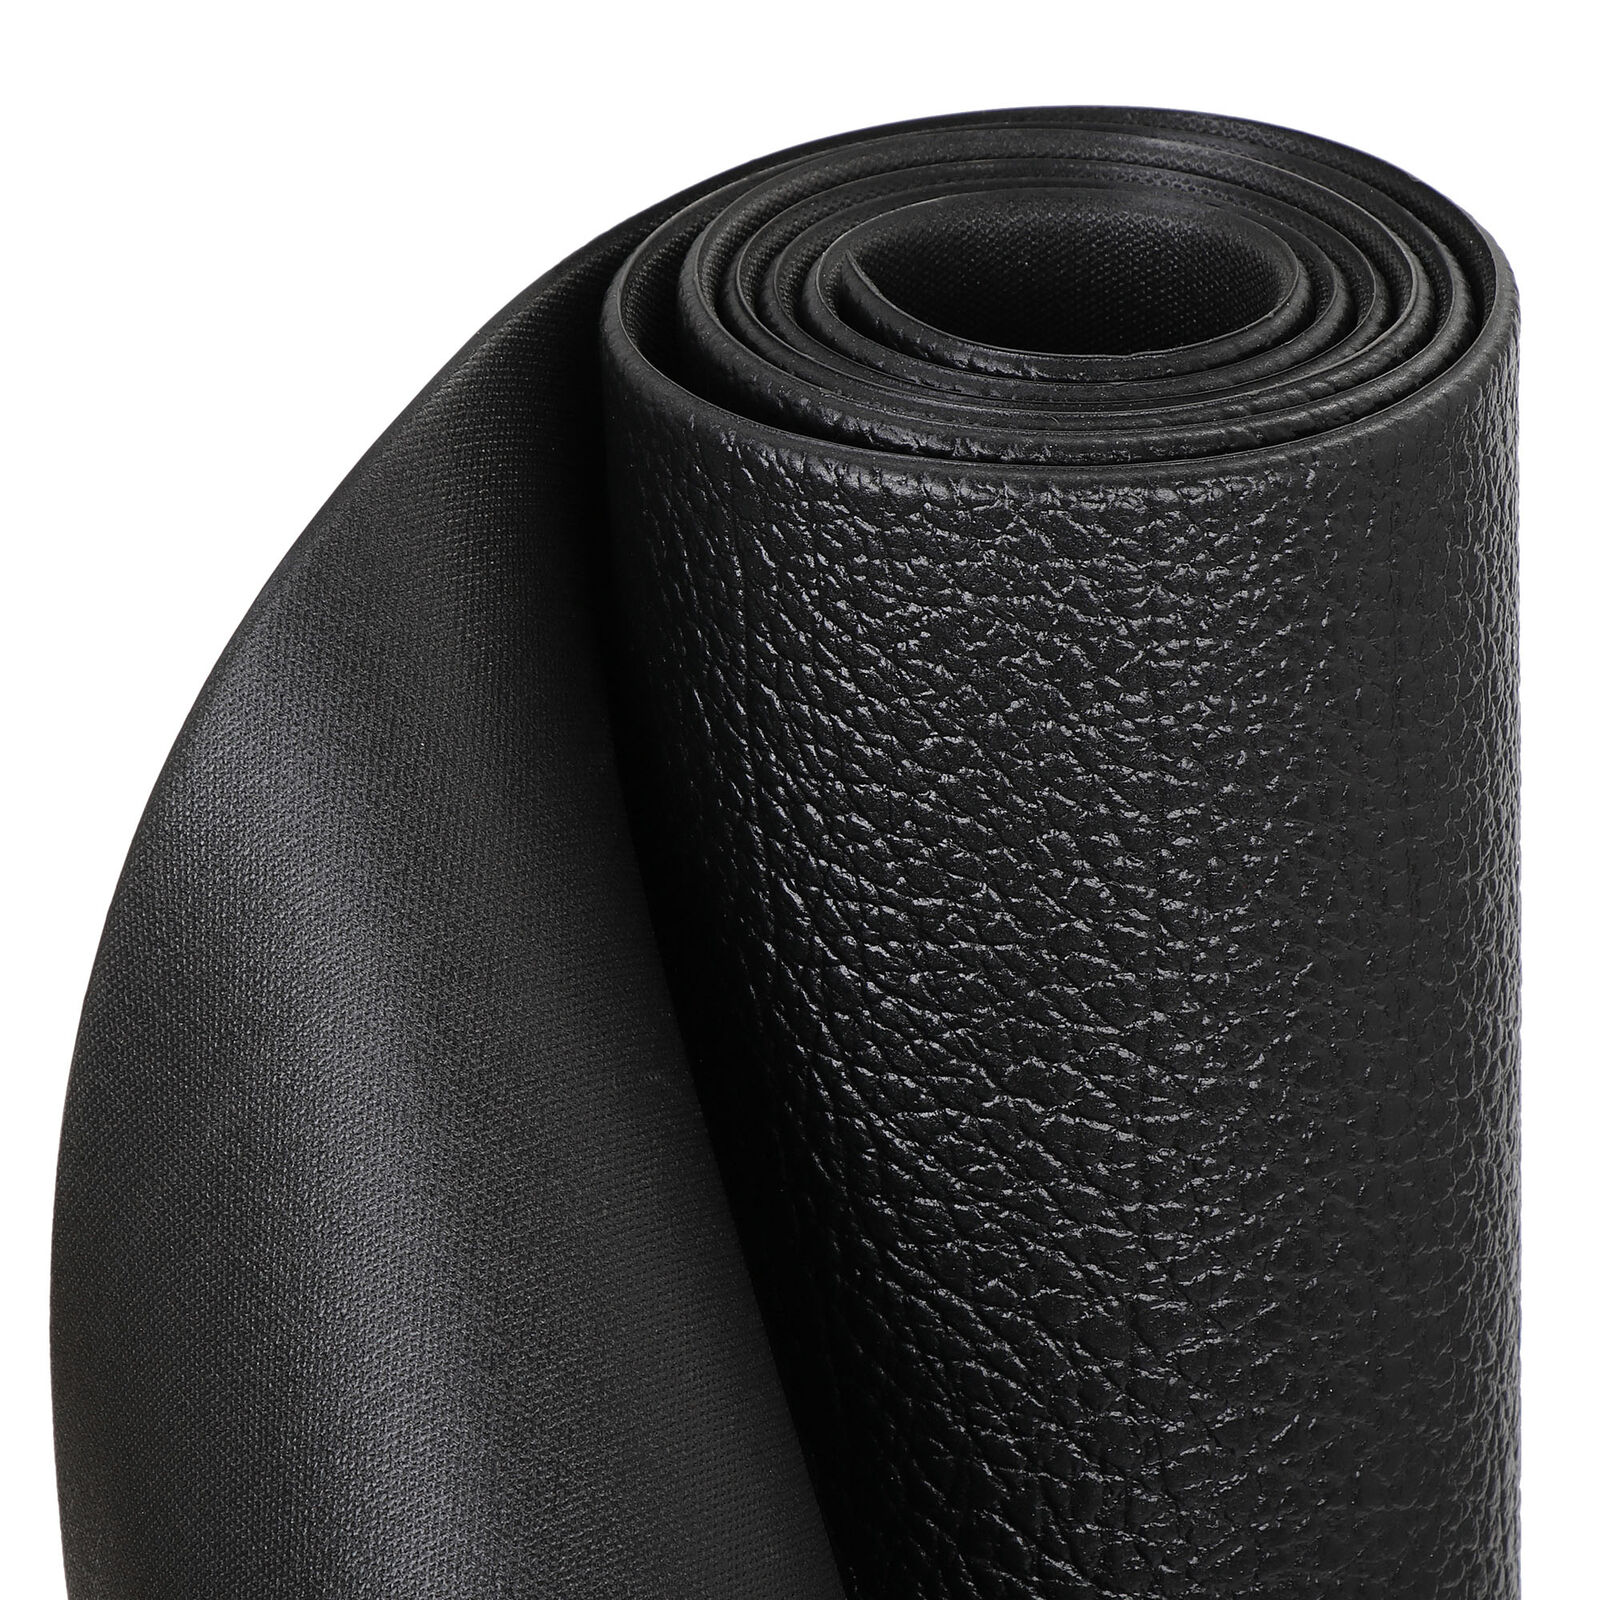 2PCS Fitness Equipment Mat and Floor Protector for Treadmills Exercise Bikes Exercise Mats